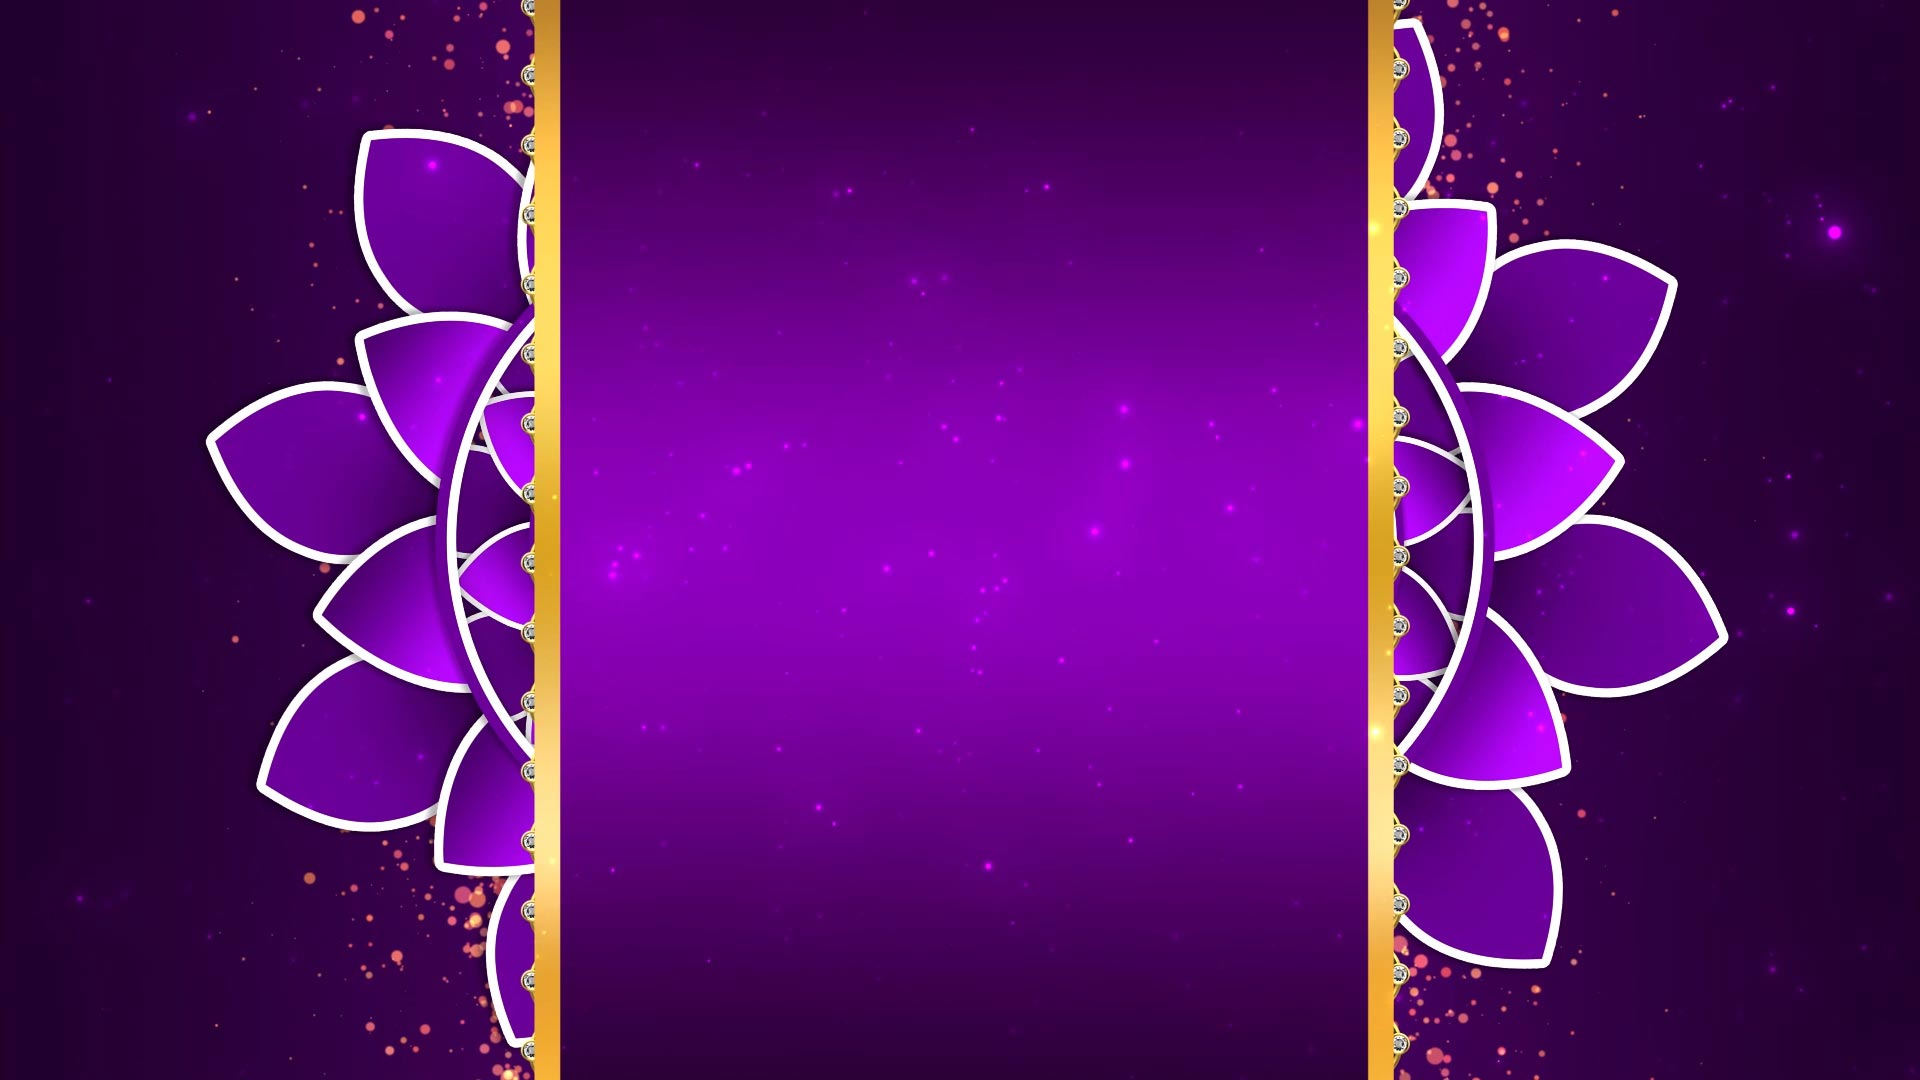 Free Wedding Invitation Title Animated Background Video Effects All Design Creative